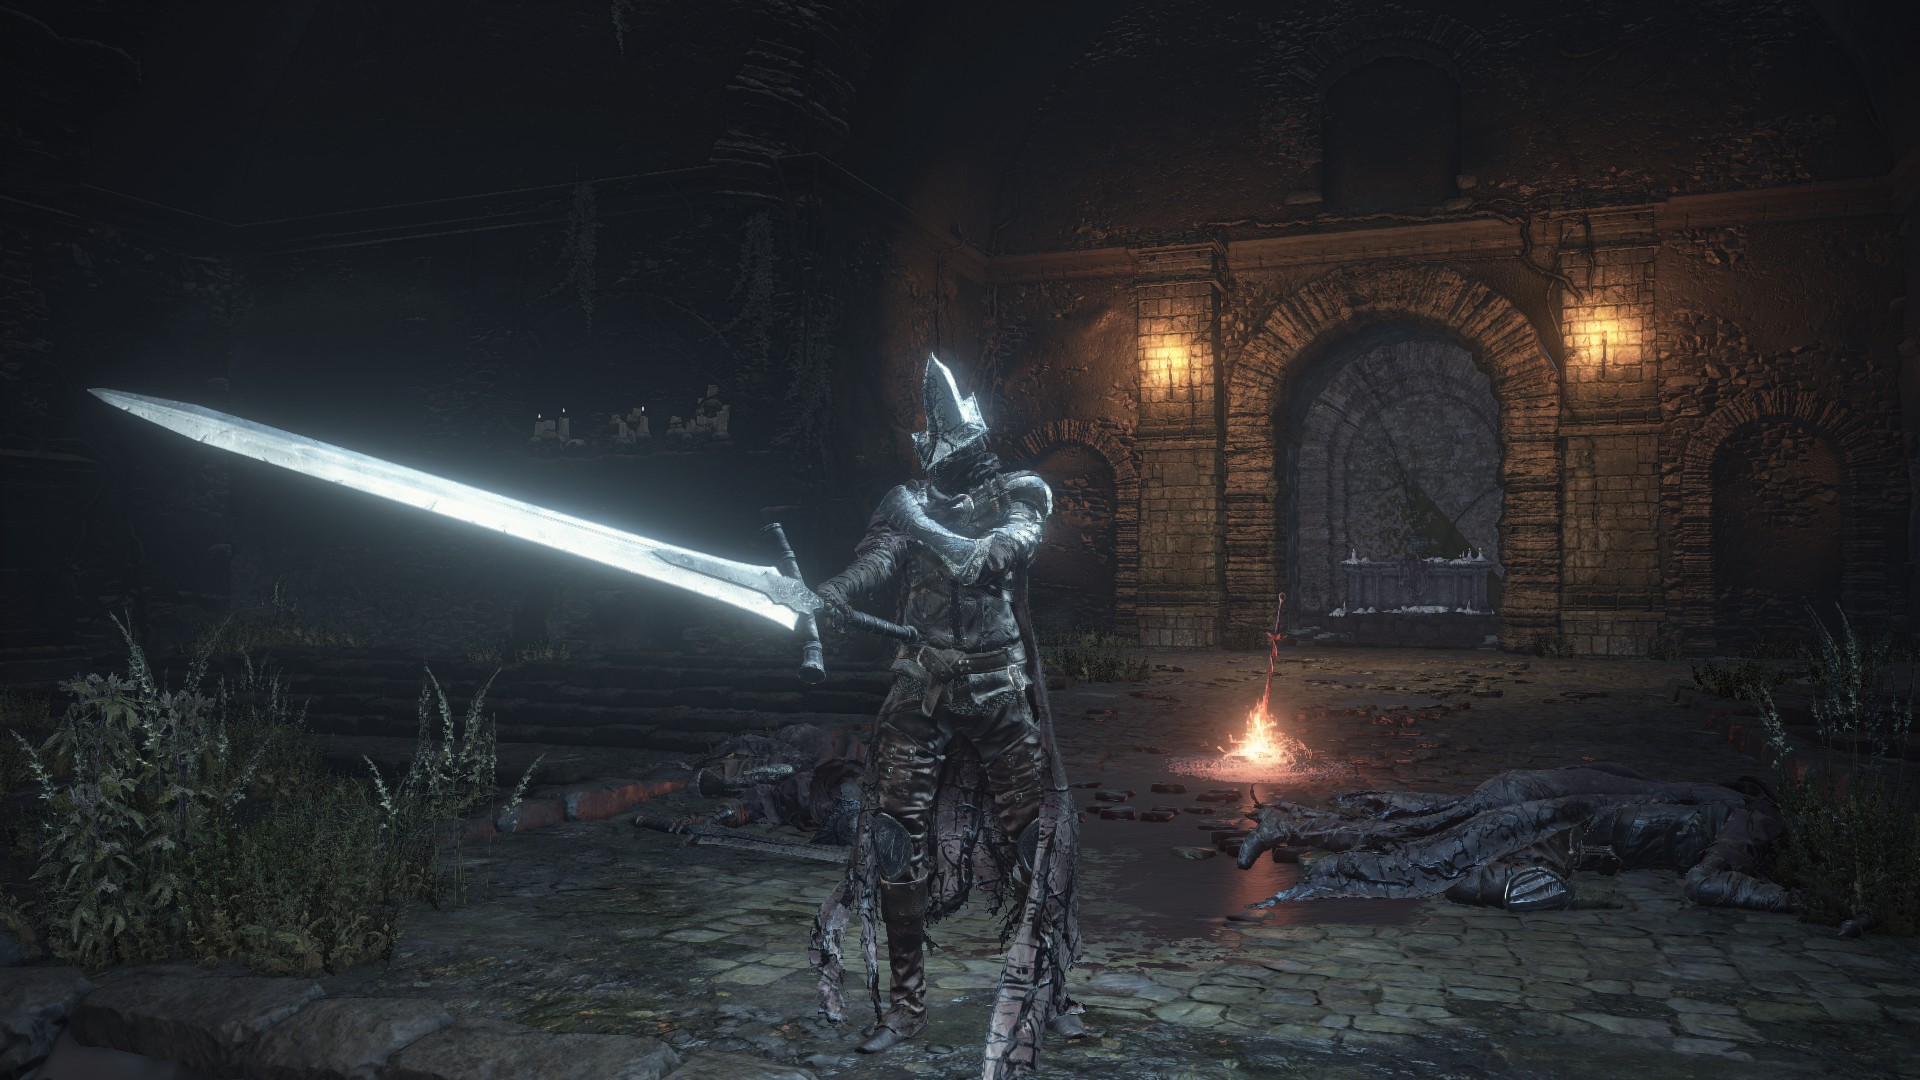 Abyss watcher roleplaying save game at dark souls 3 - Watchers dark souls 3 ...